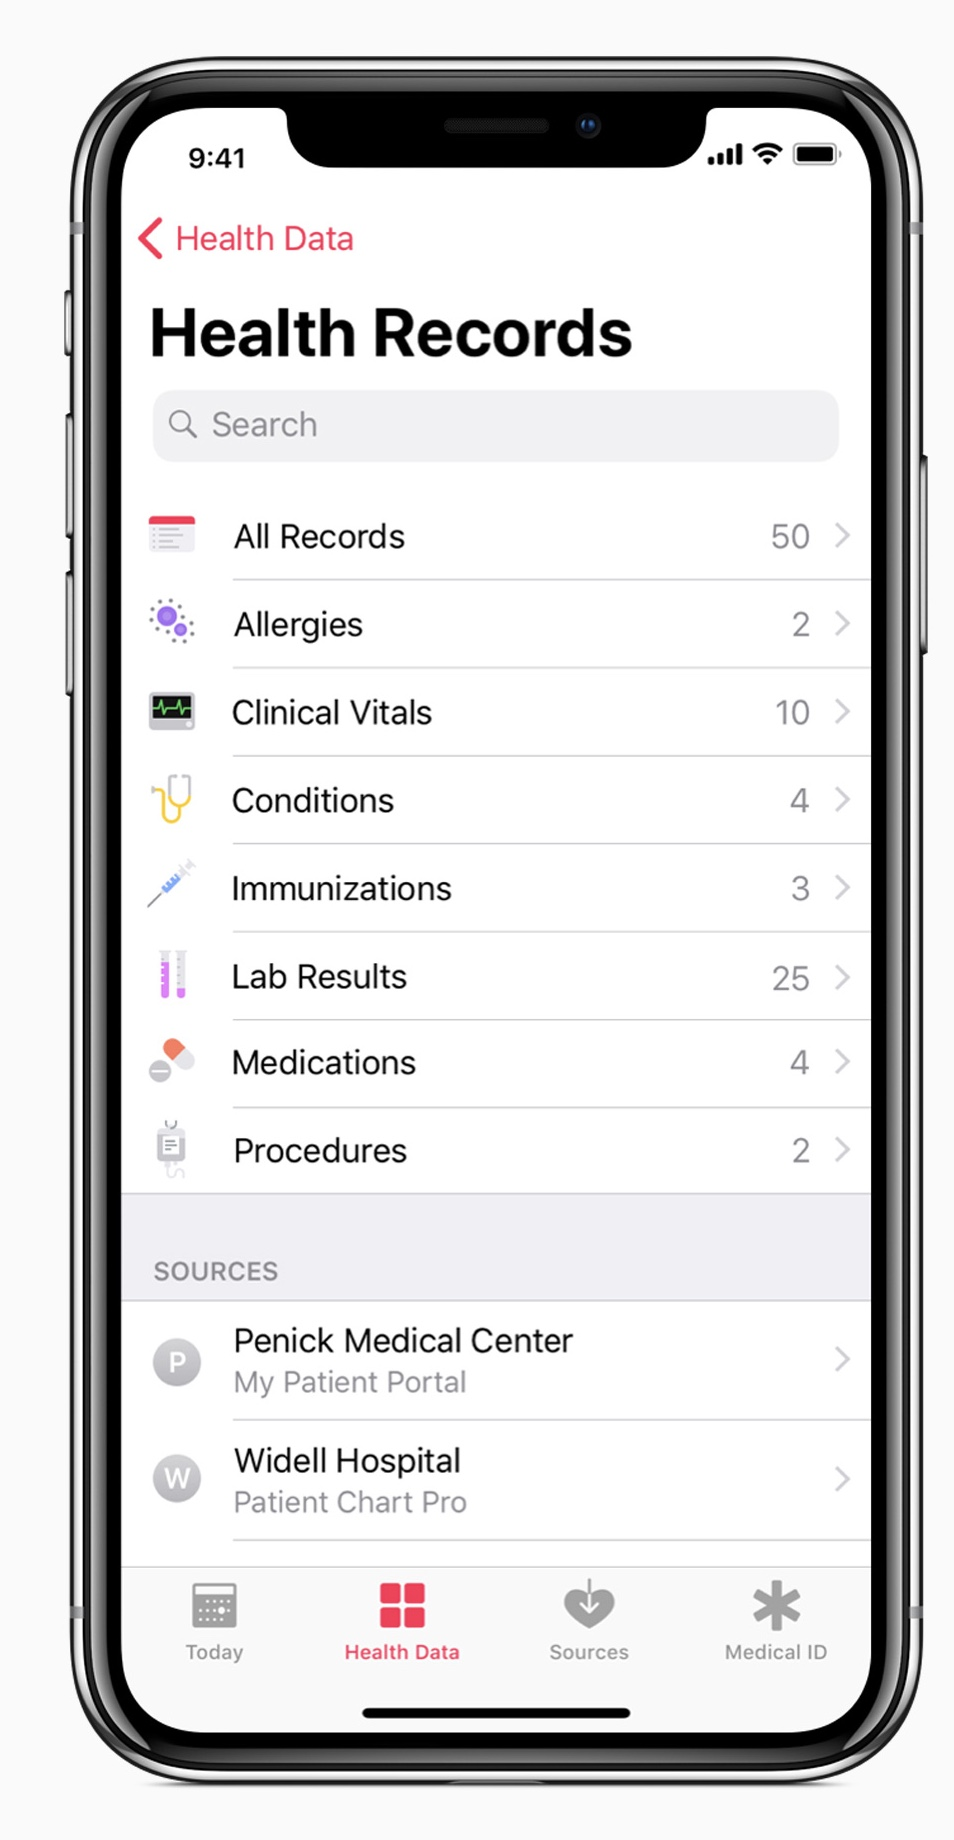 A new Health Records feature makes it easier for people to access and control of all of their health records and data.